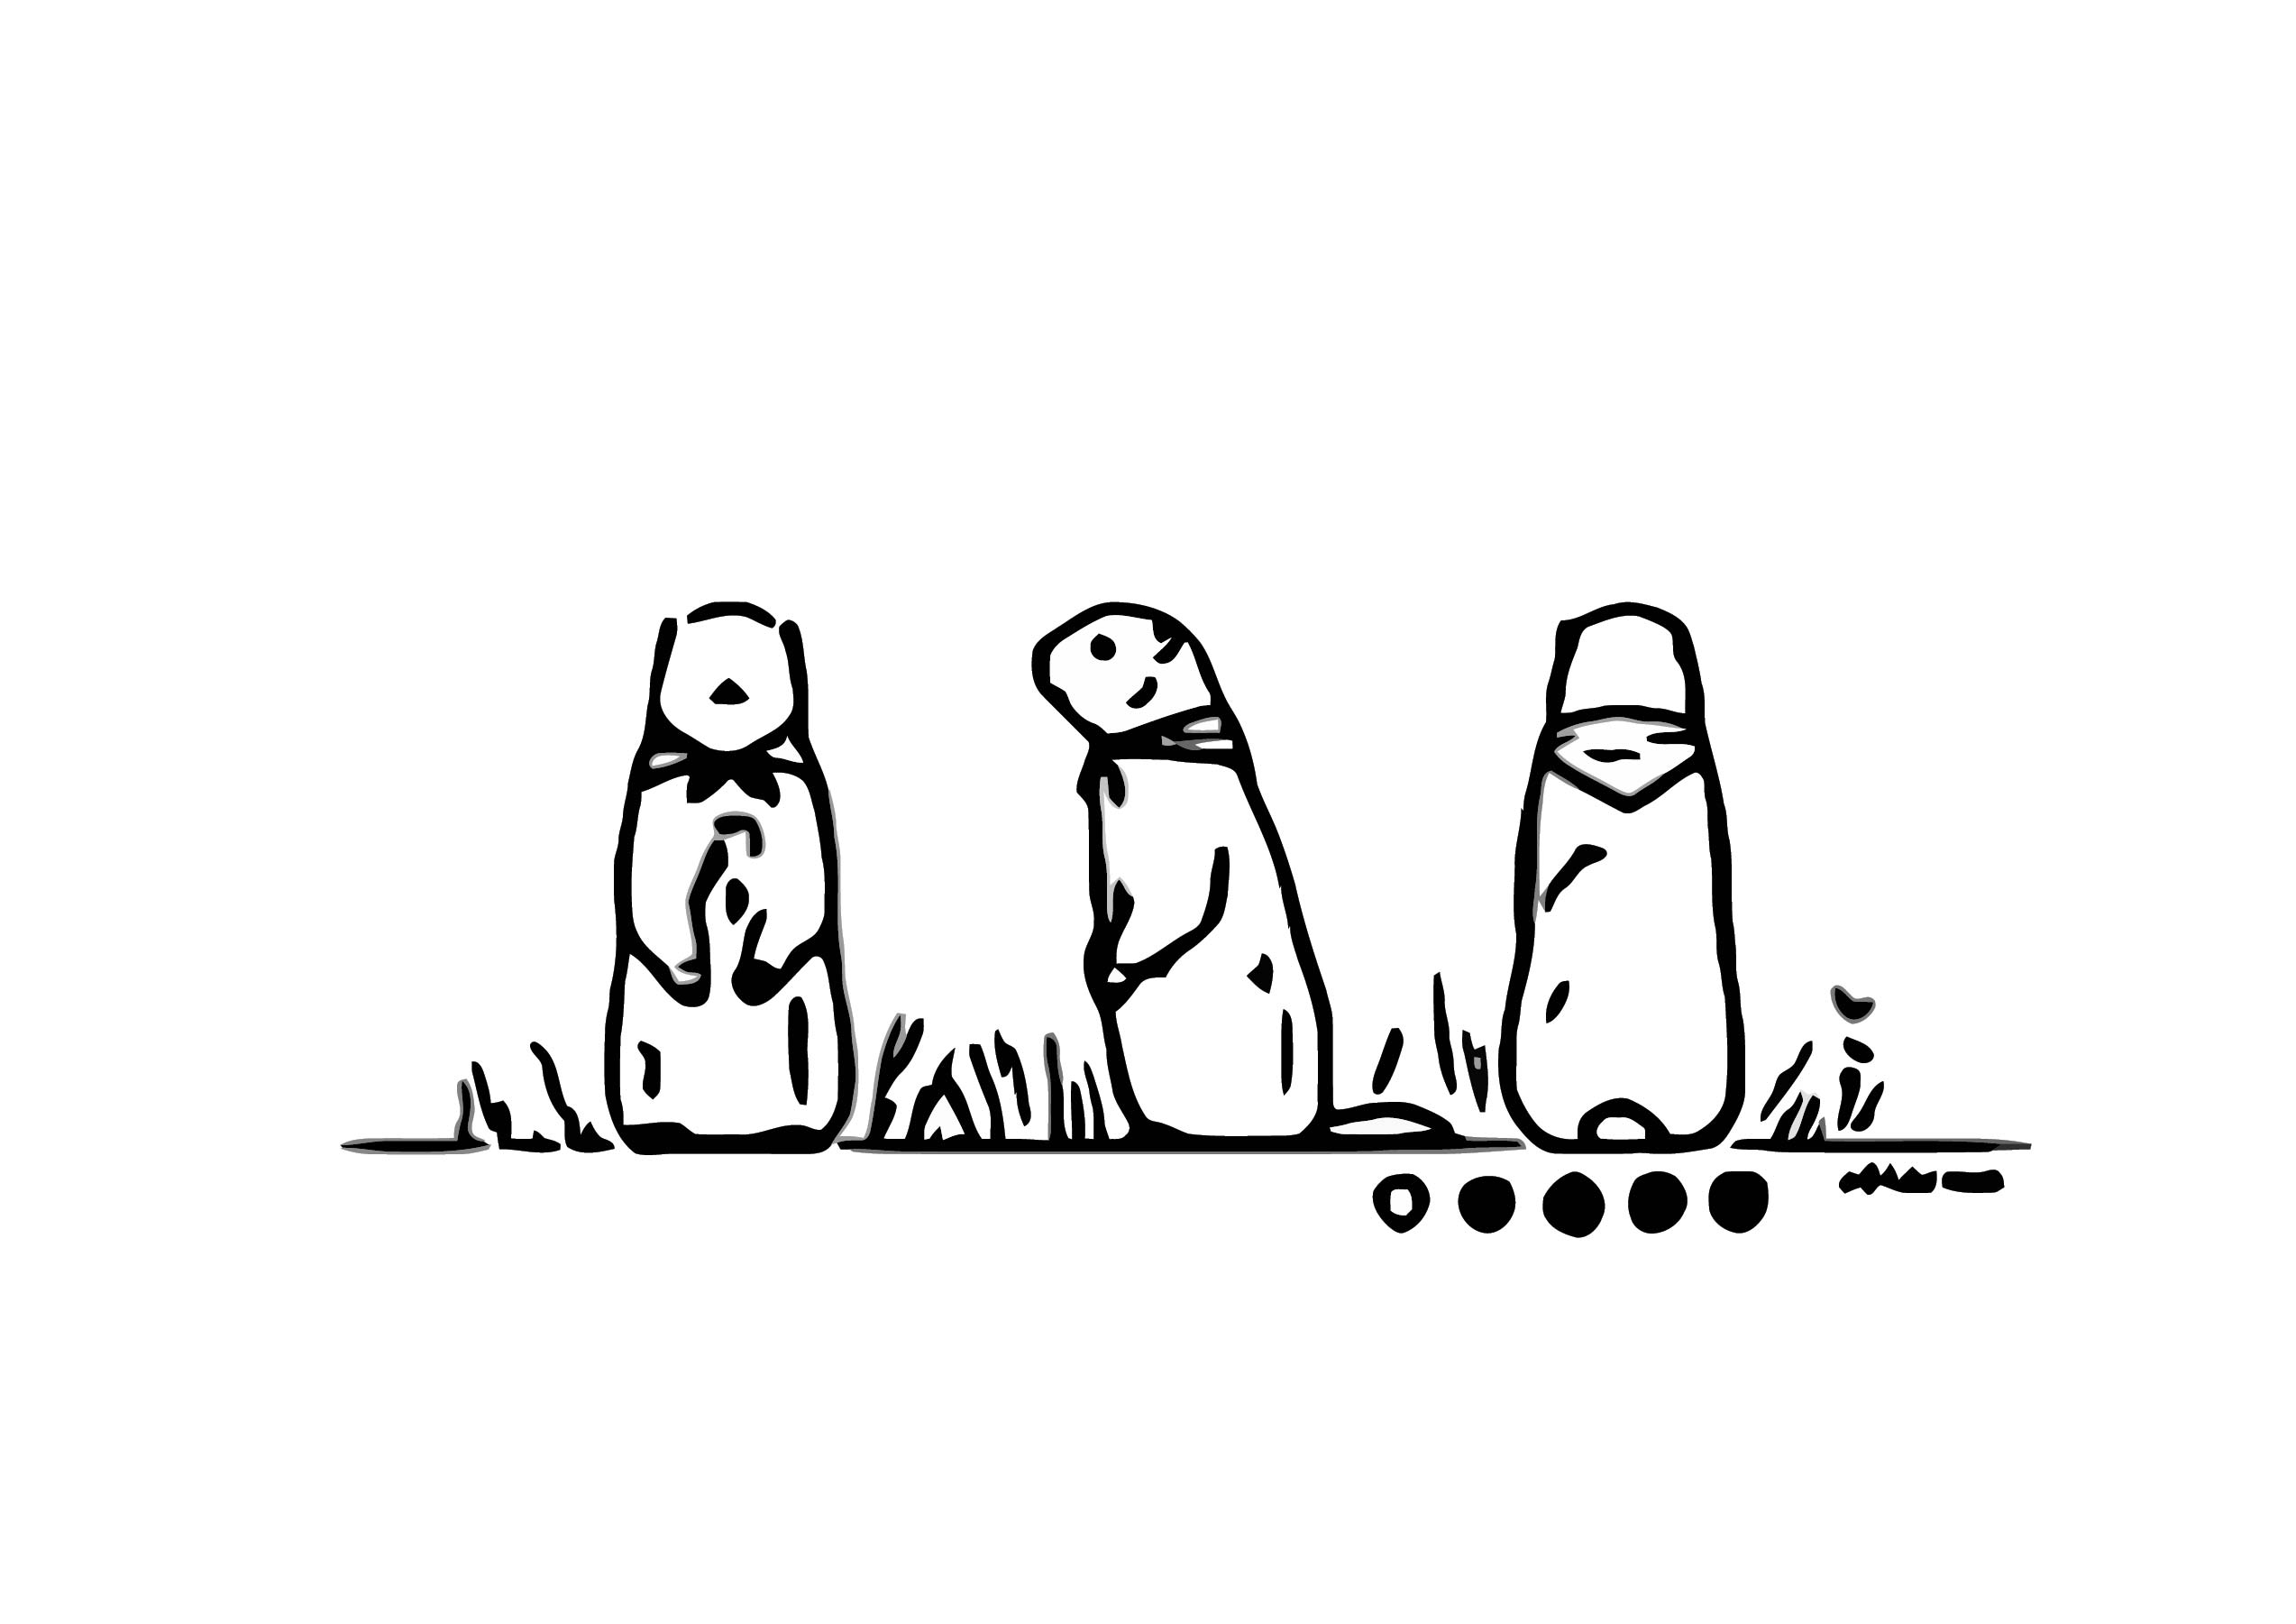 Marmot Design 1024x724 Cartoonize Coloring Page